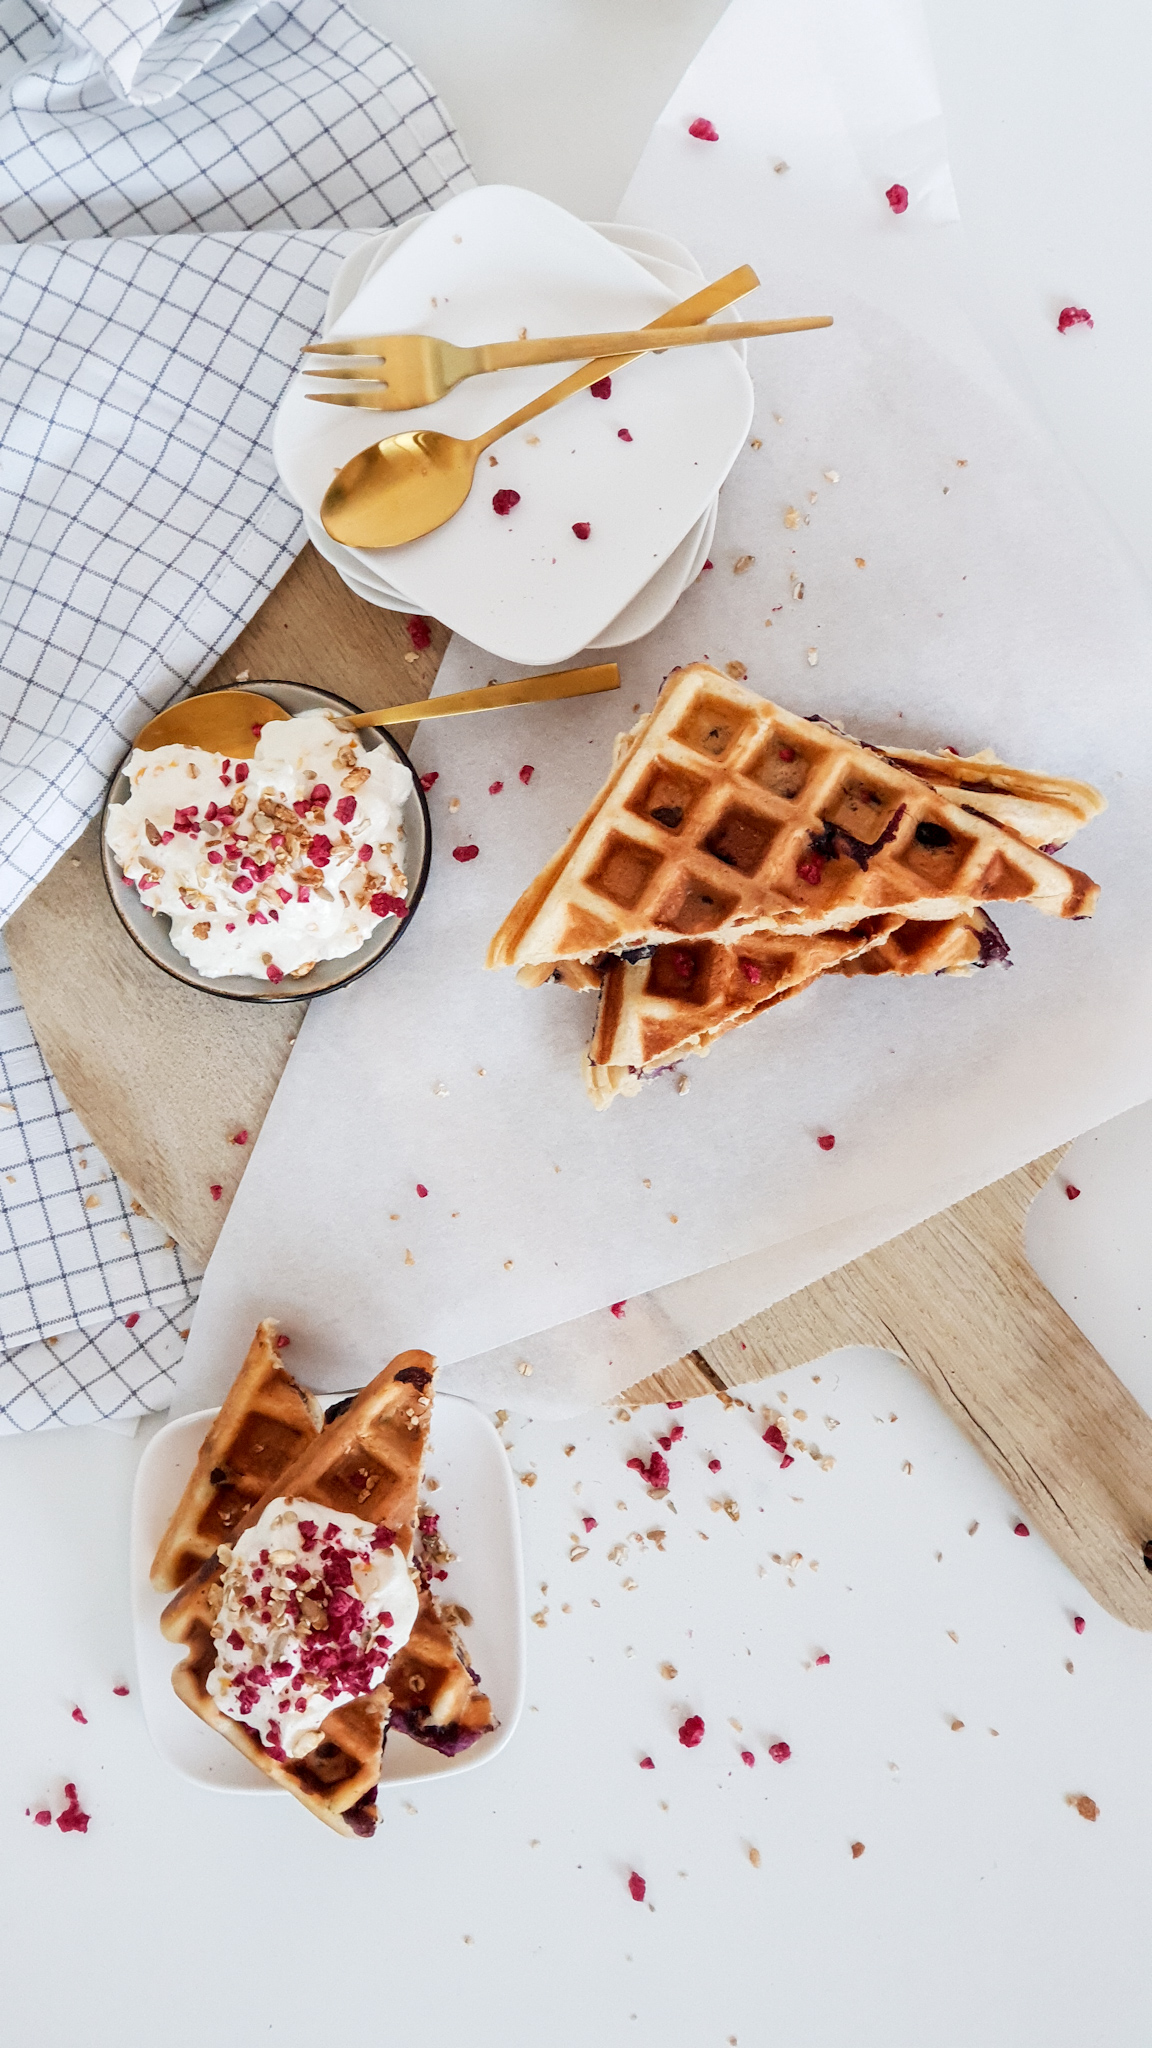 Blueberry waffels